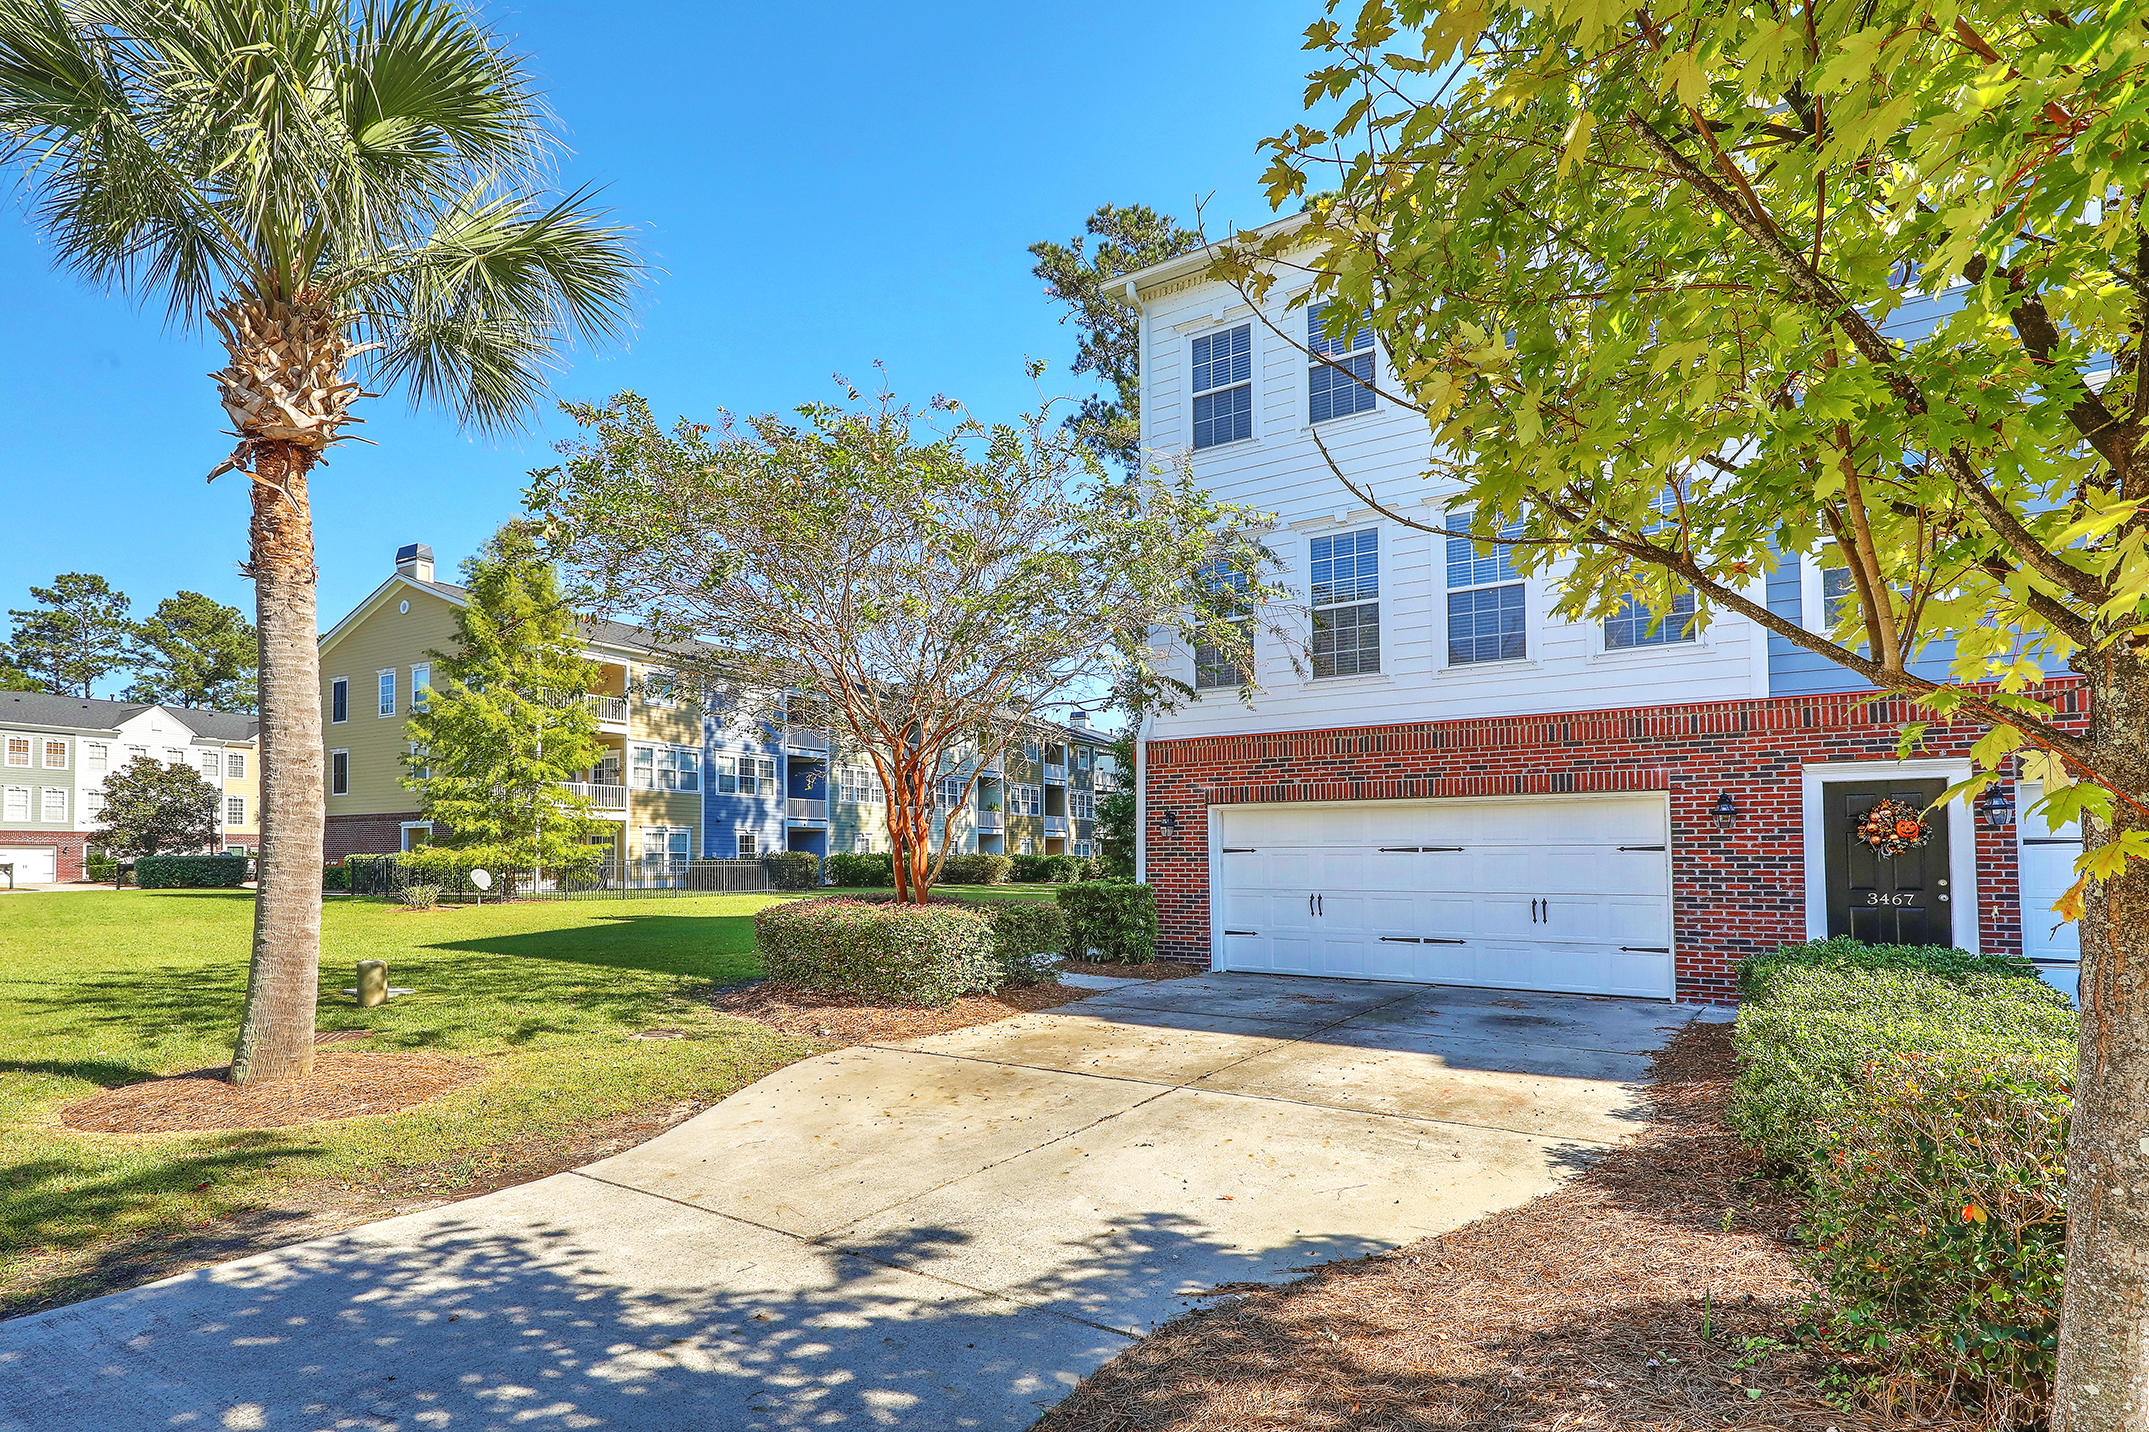 Kensington at Park West Homes For Sale - 3471 Claremont, Mount Pleasant, SC - 32